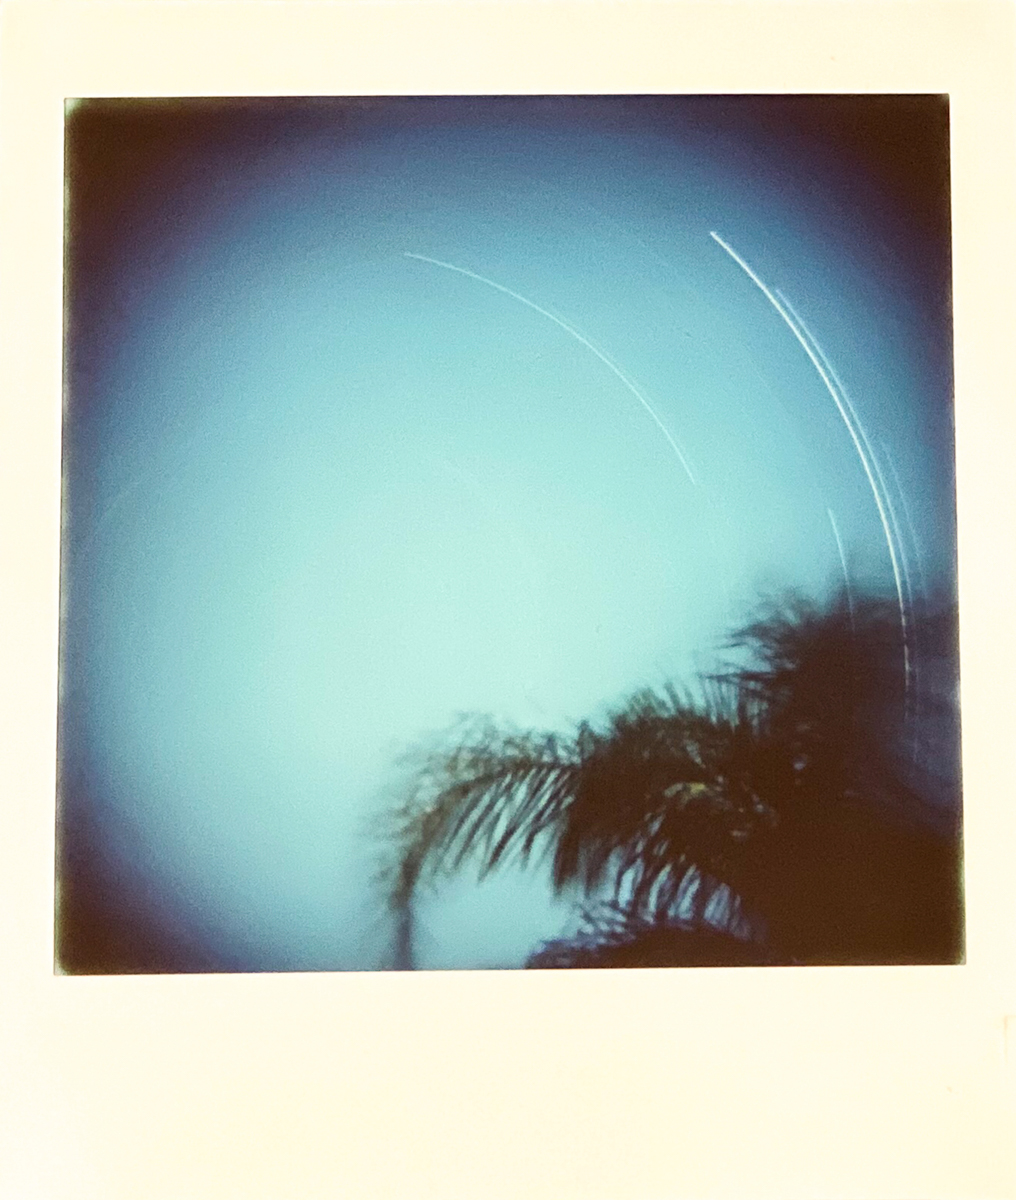 Star Trail - Lomography Diana Instant Square and Fujifilm Instant Square film